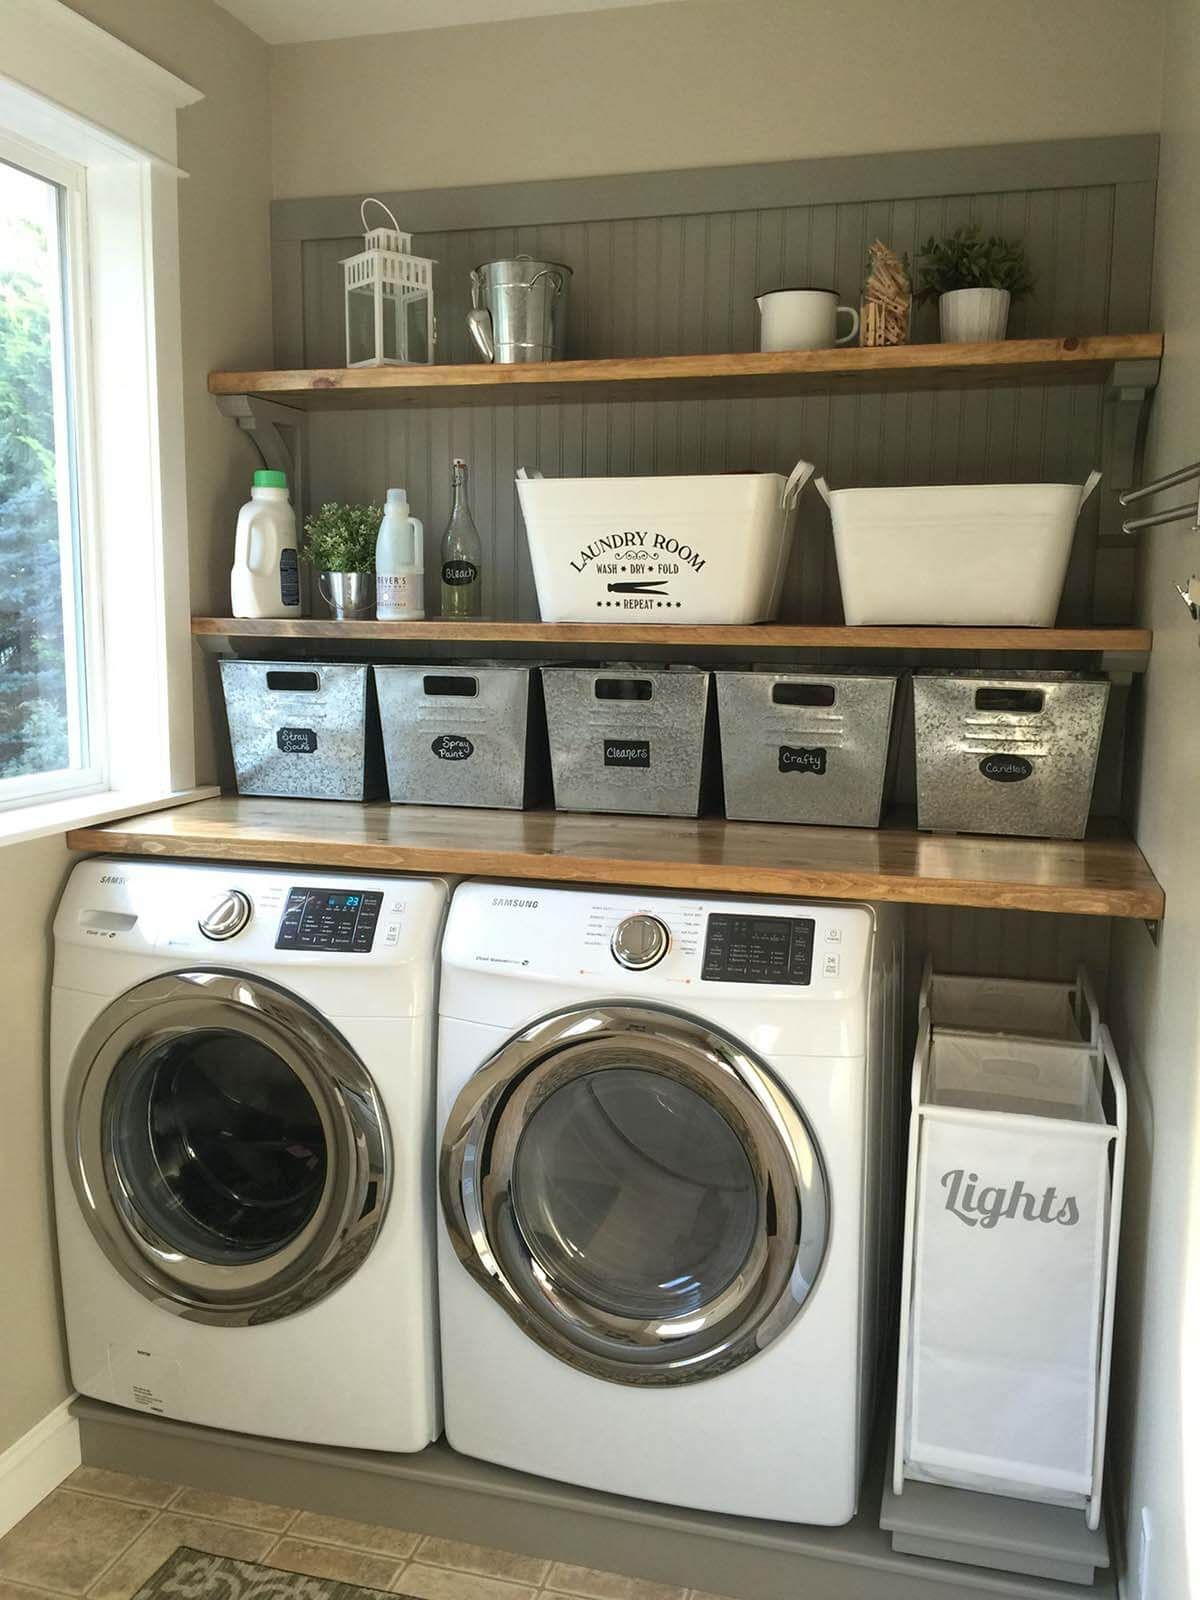 28 Beautiful And Functional Small Laundry Room Design Ideas That Will Transform Your Space Laundry In Bathroom Laundry Mud Room Laundry Room Design